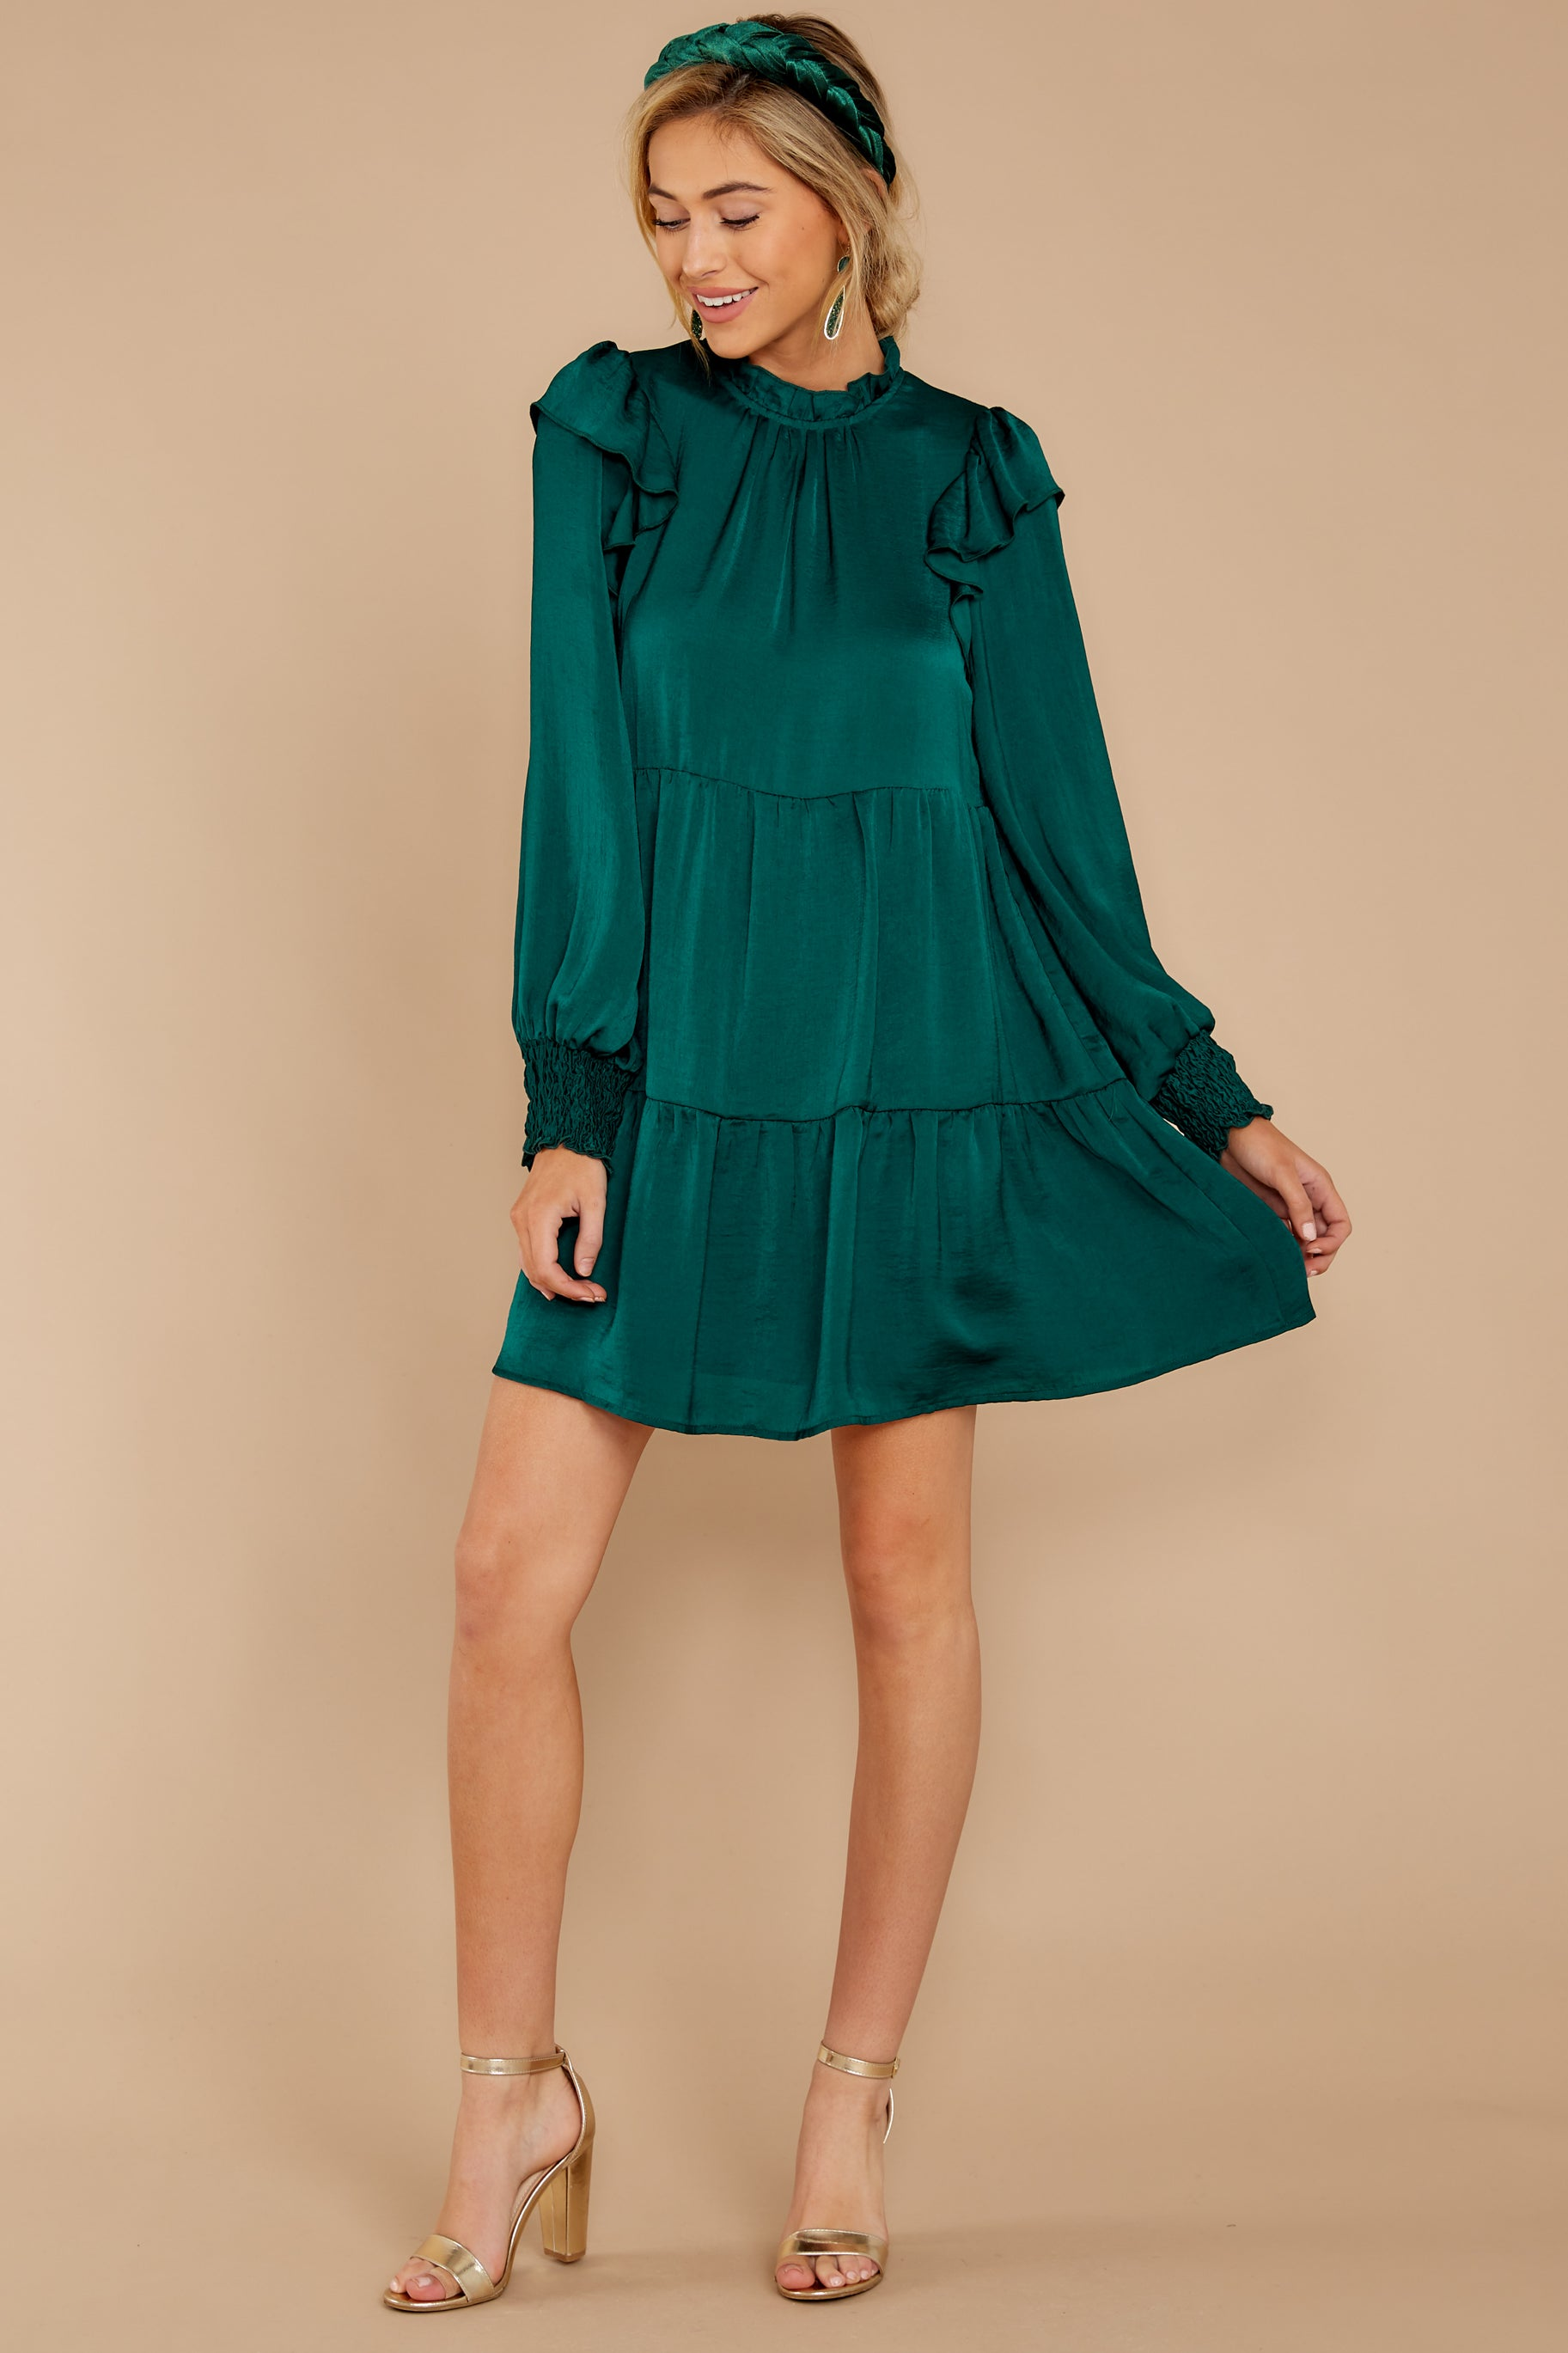 1 On My Level Emerald Green Dress at reddressboutique.com